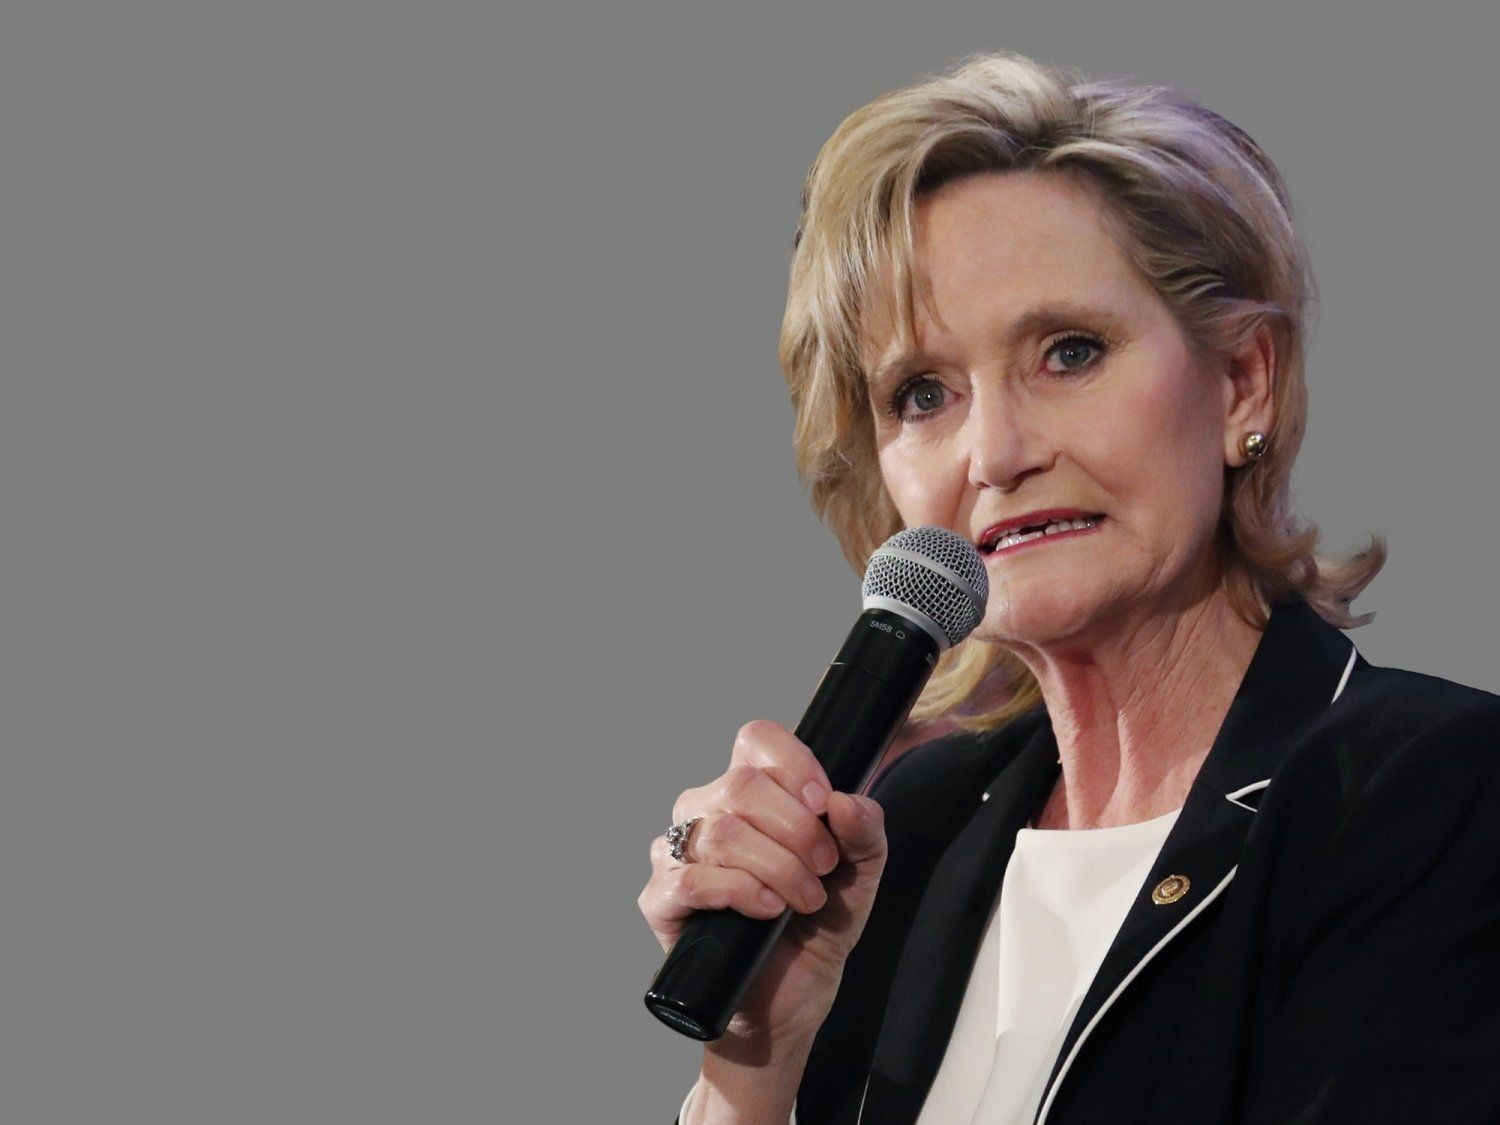 Cindy Hyde-Smith, Republican US Senator, speaks to supporters as she celebrates her runoff win over Democrat Mike Espy in Jackson, Mississippi, graphic element on gray